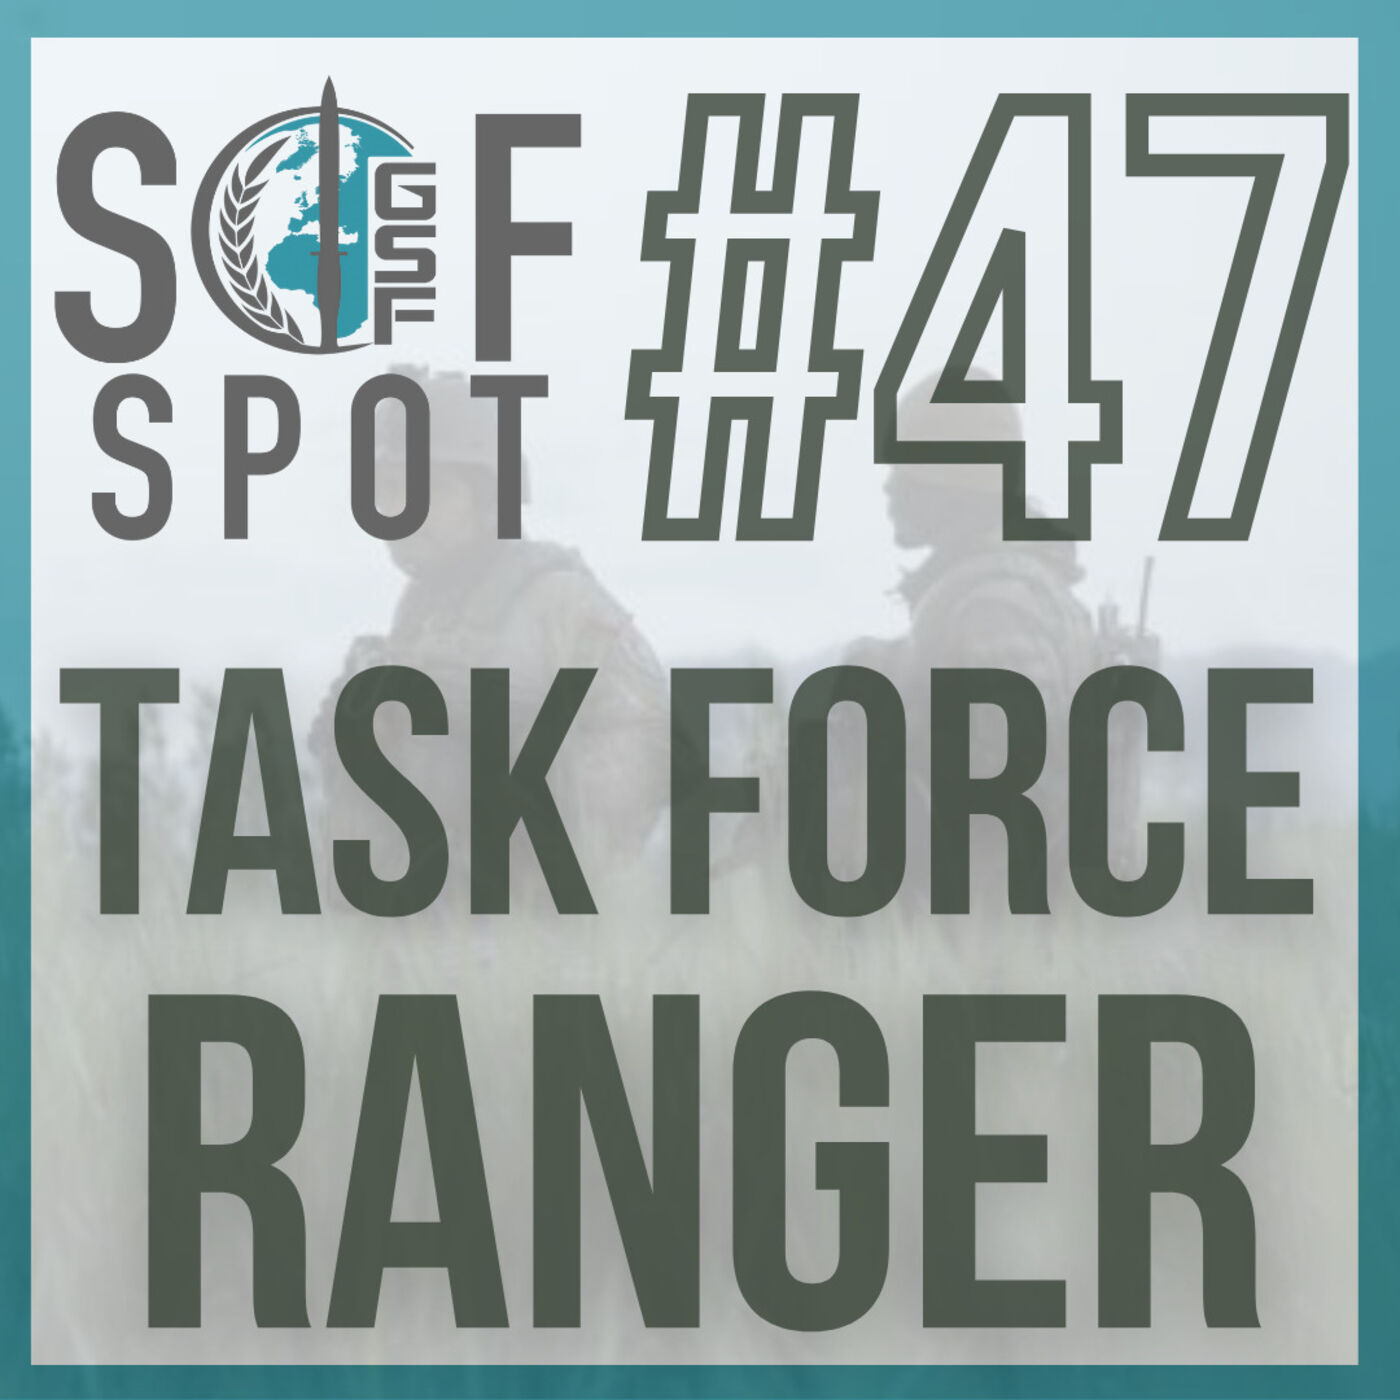 Task Force Ranger